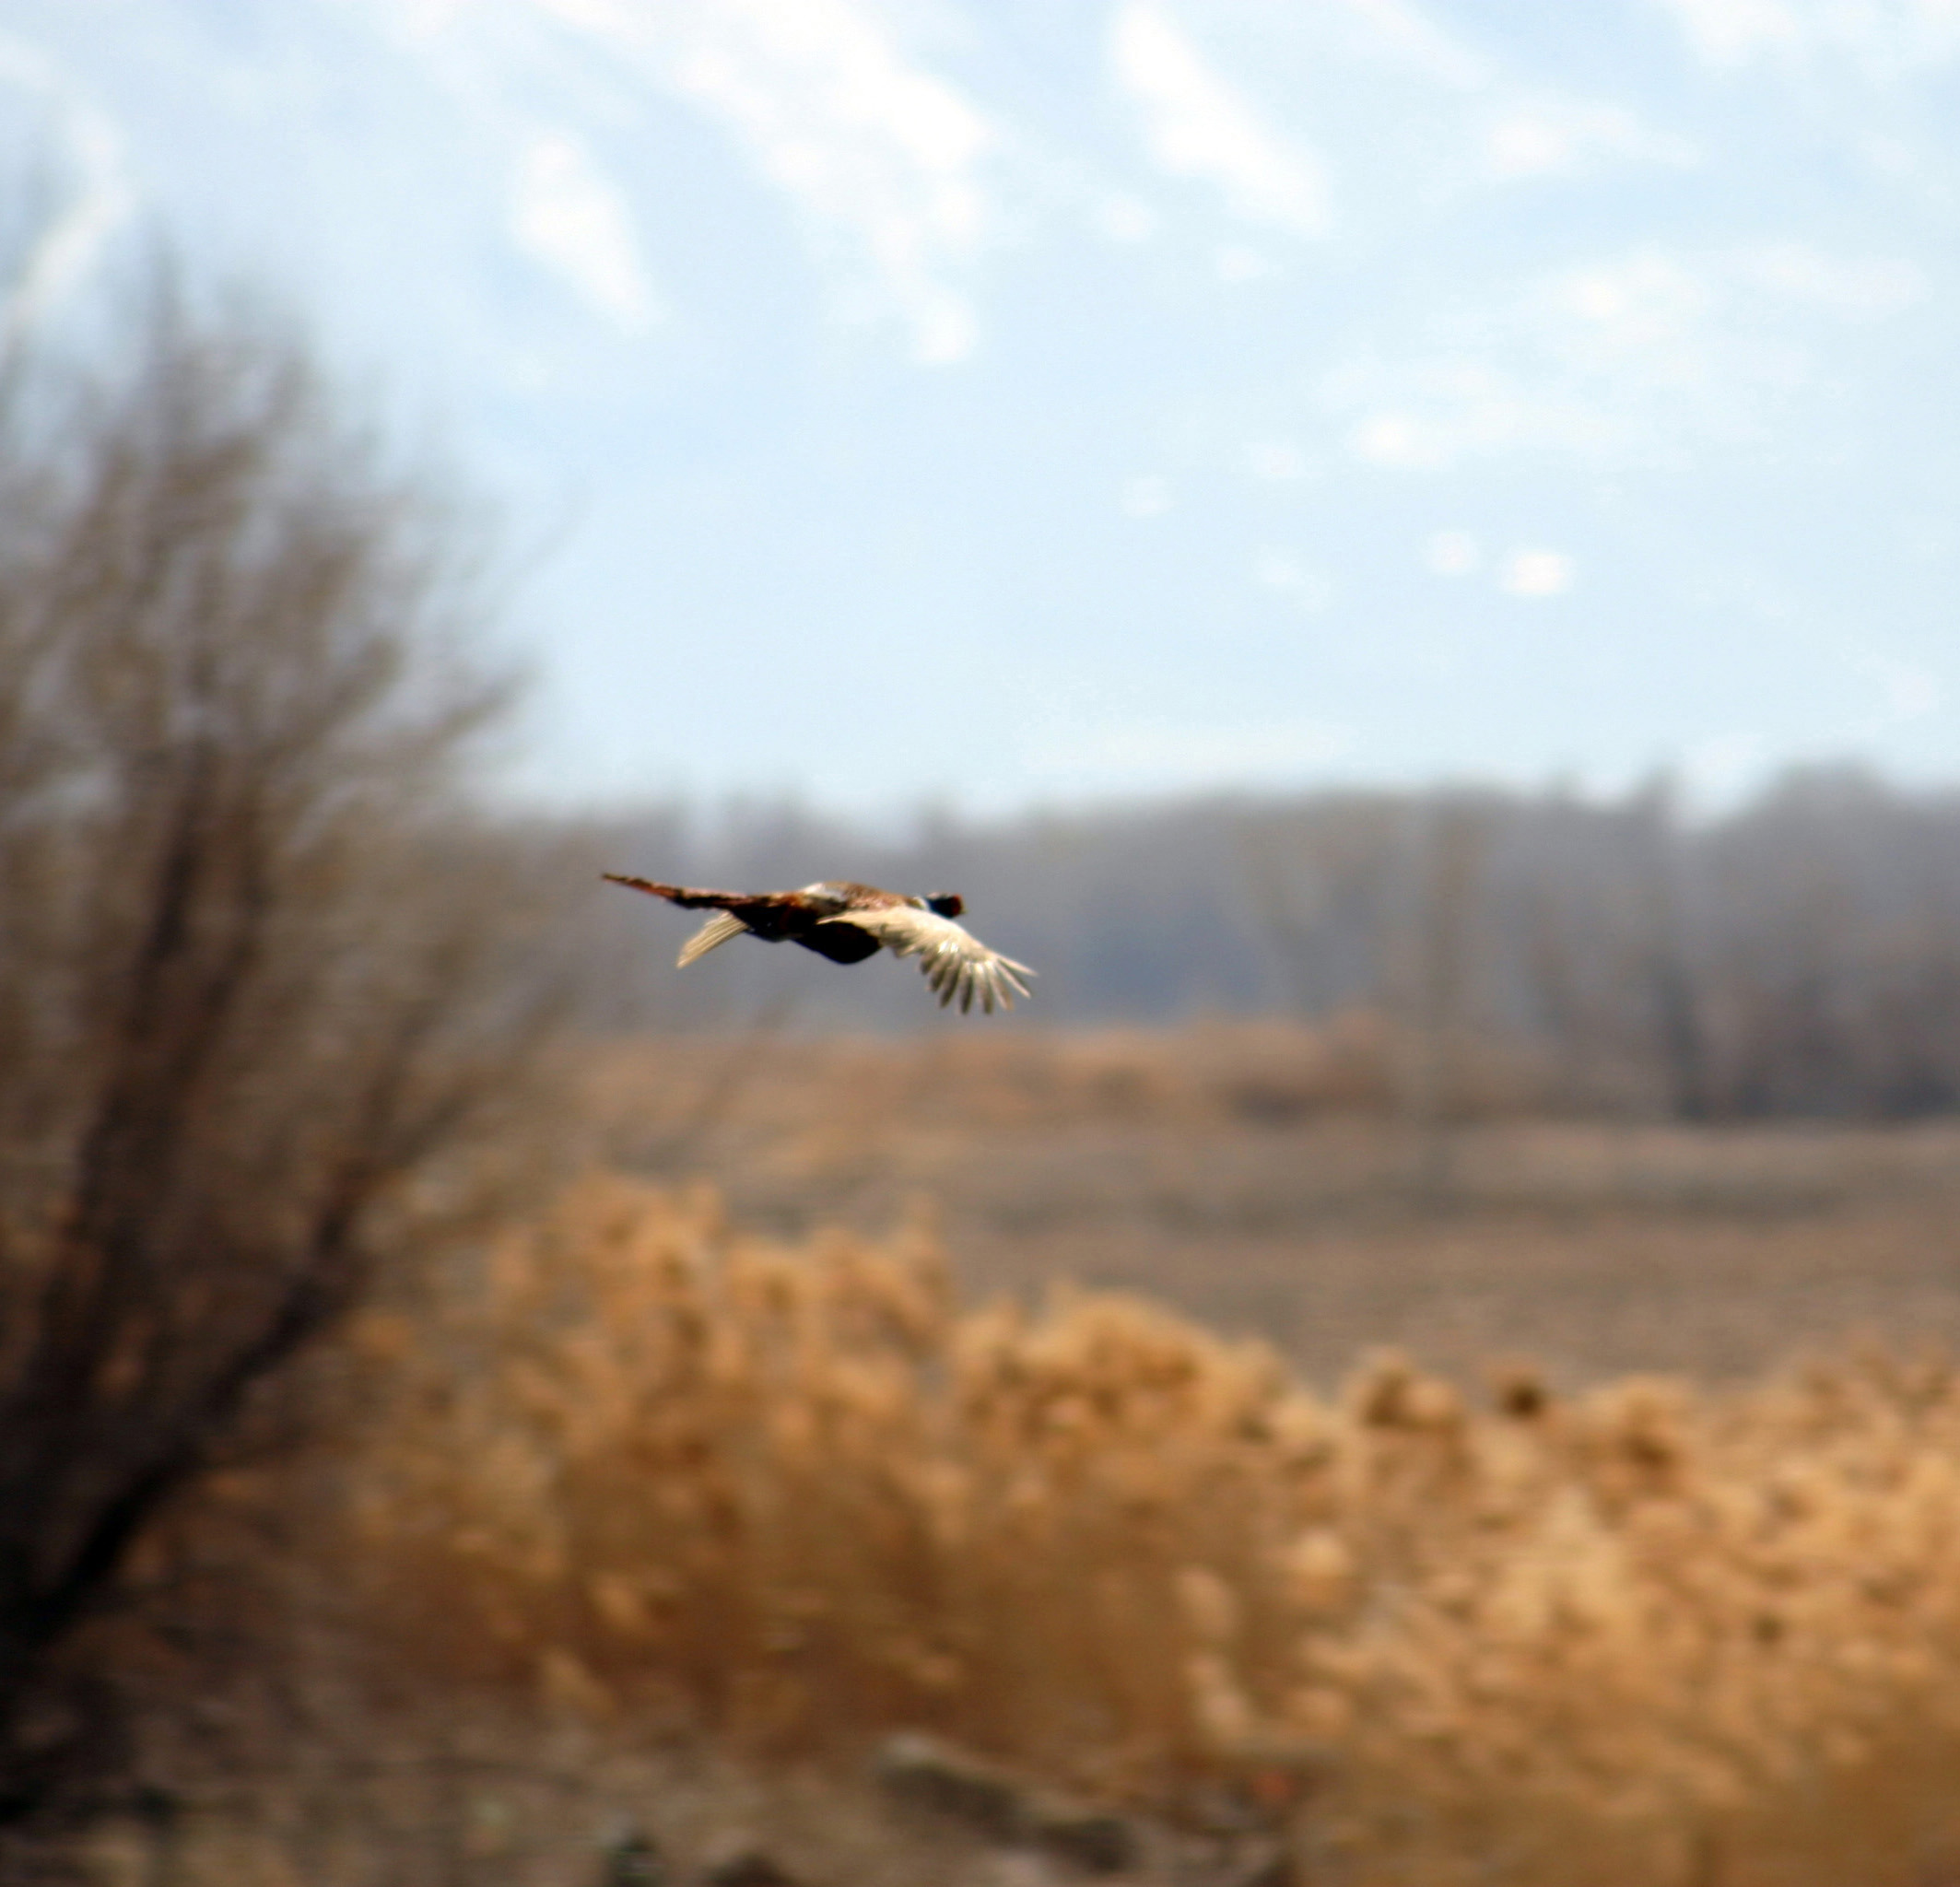 Beautiful pheasant flies through the air, location and date unspecified | Photo by Scott Root, Department of Wildlife Resources, St. George News